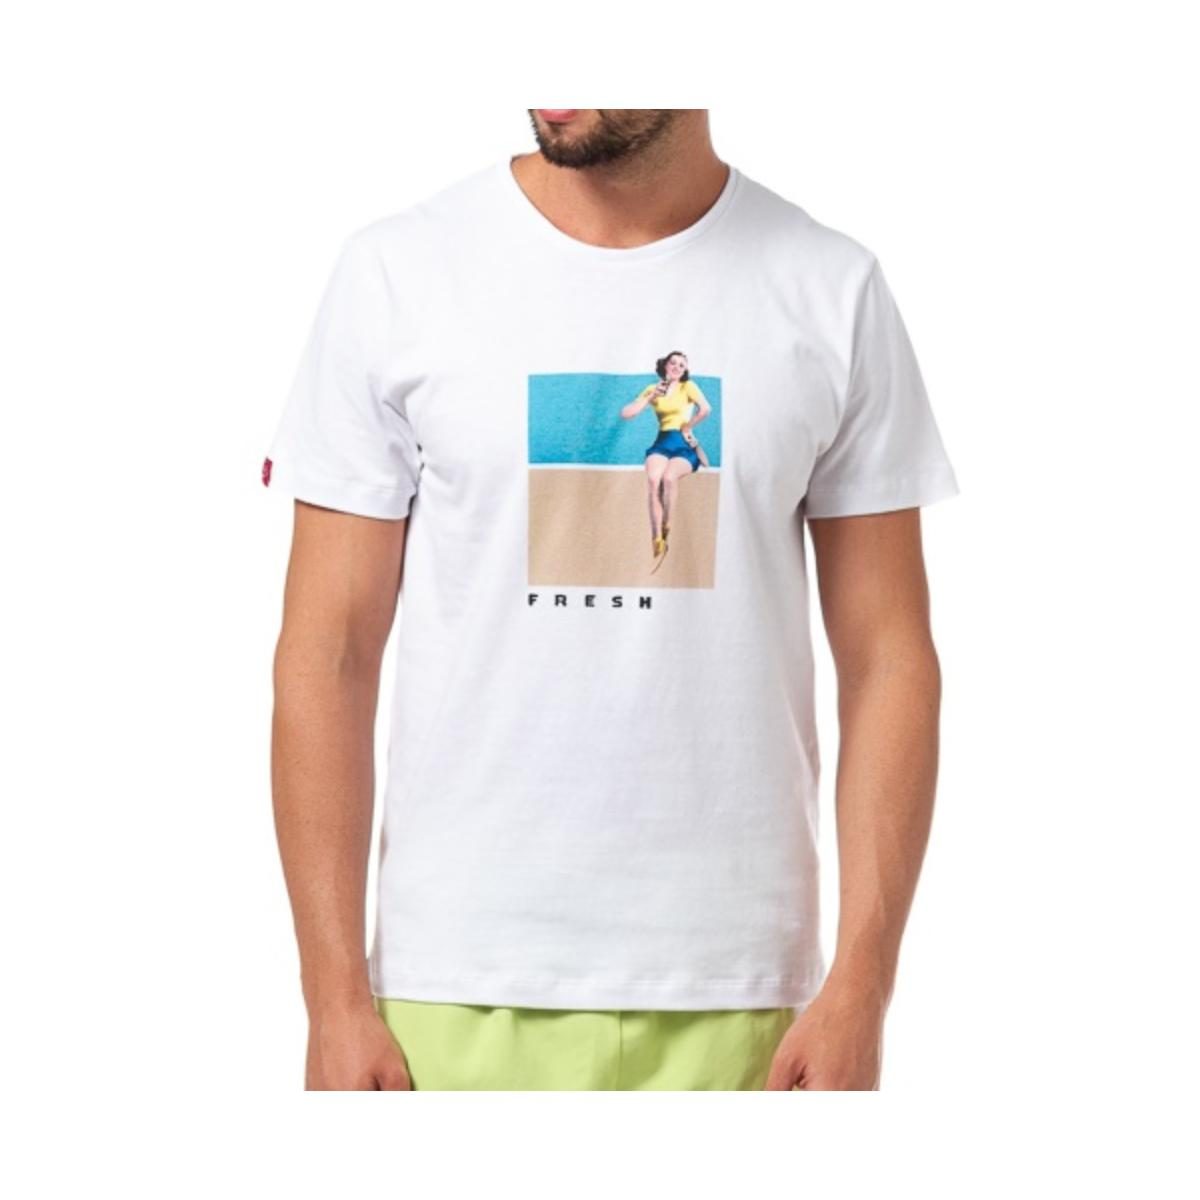 Camiseta Masculina Coca-cola Clothing 353207303 001 Branco